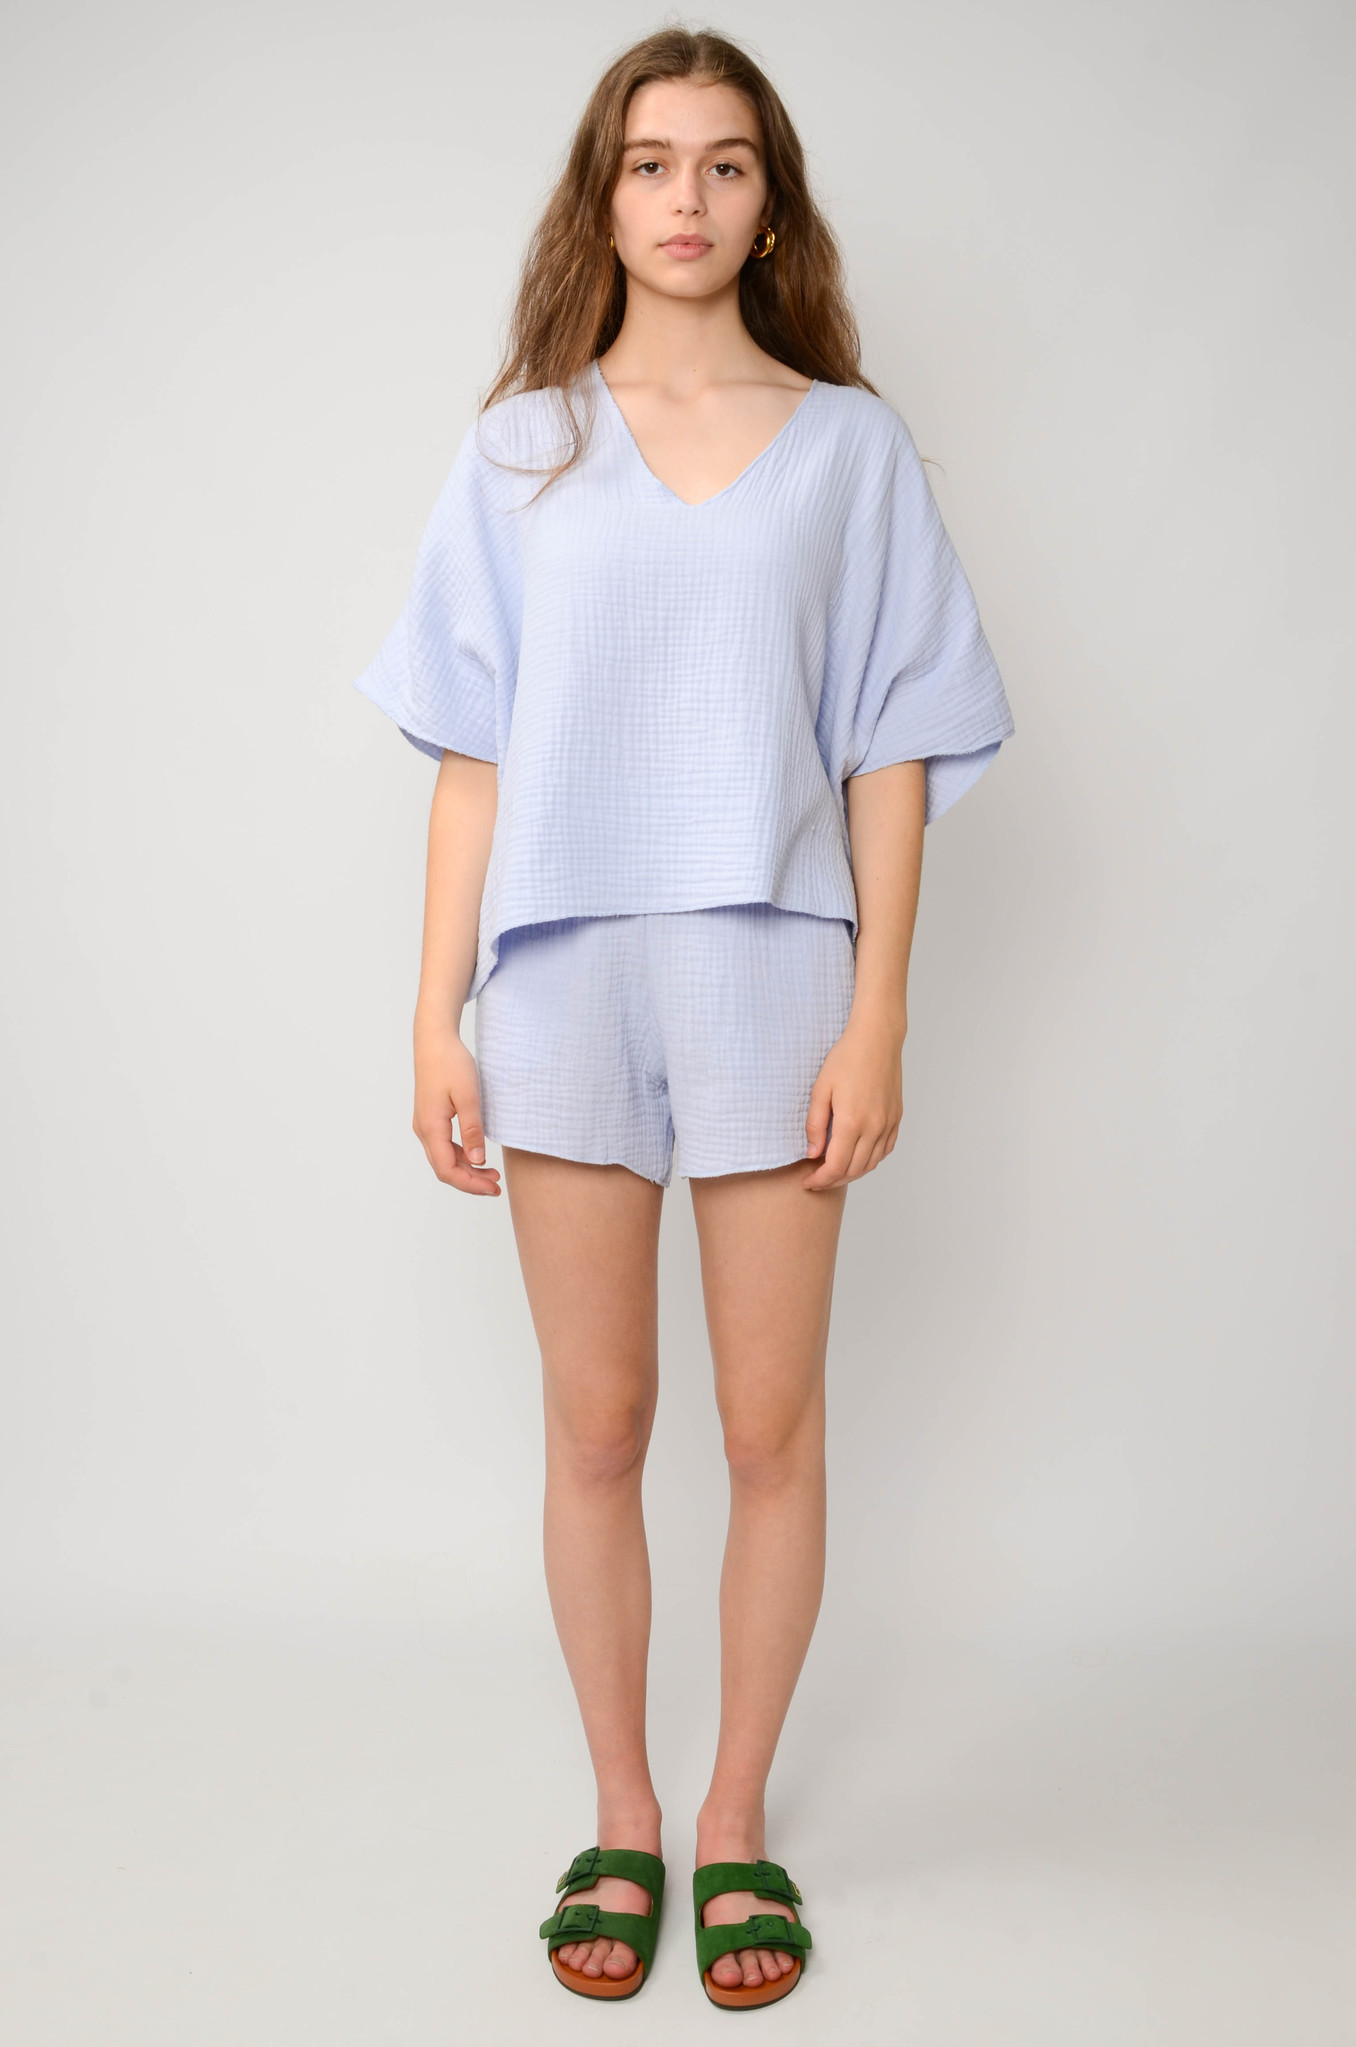 DATAI TOP IN ICE BLUE-2